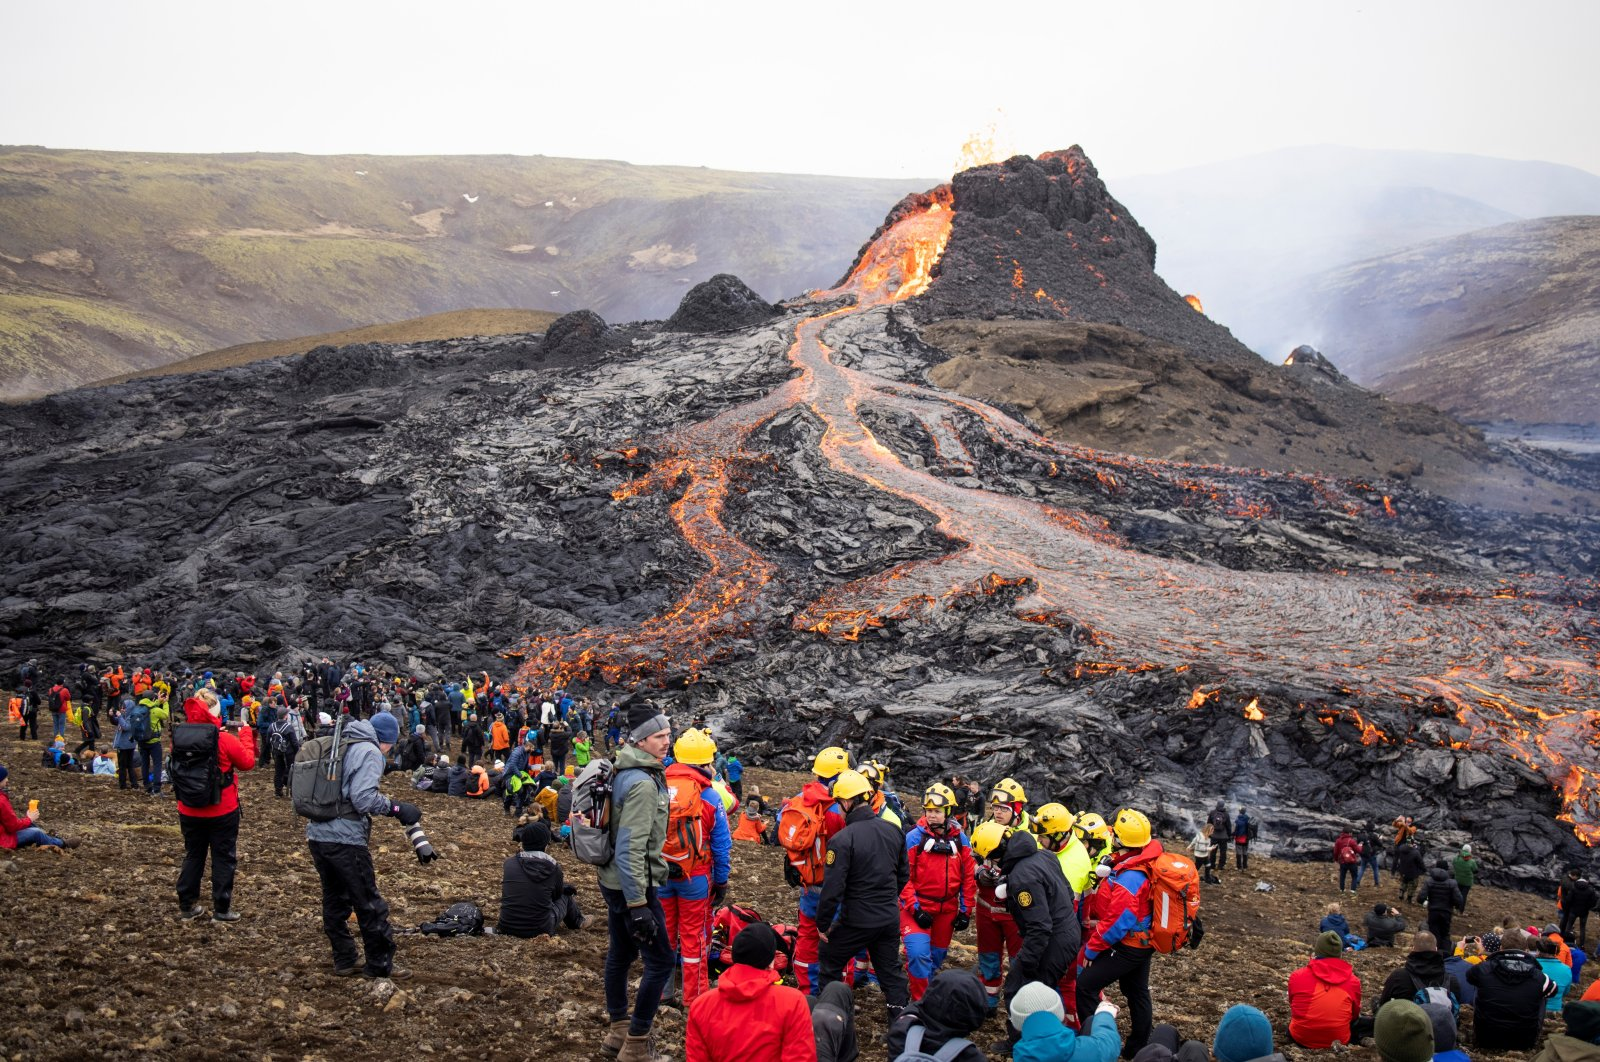 People gather at the volcanic site on the Reykjanes Peninsula following Friday's eruption in Iceland, March 21, 2021. (Reuters Photo)